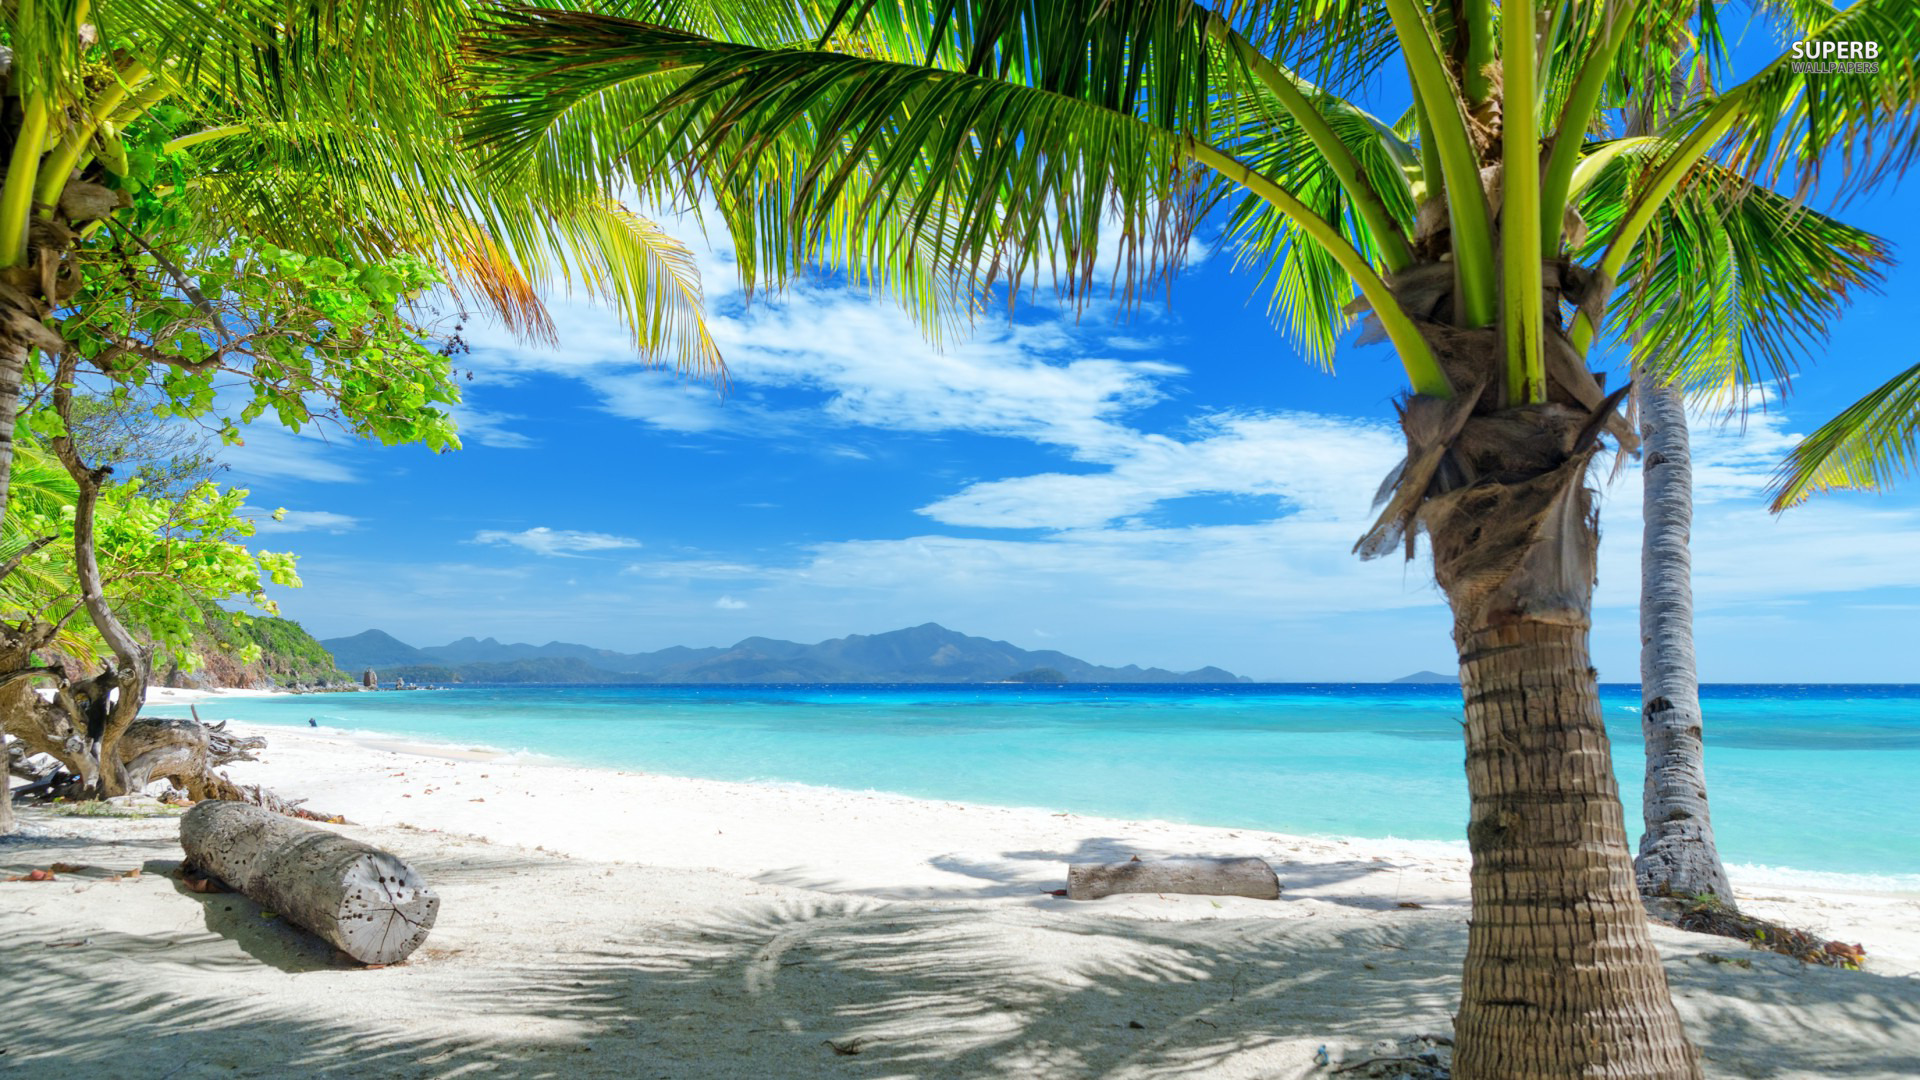 tropical beach   Beautiful Beach Wallpapers HD 1920x1080